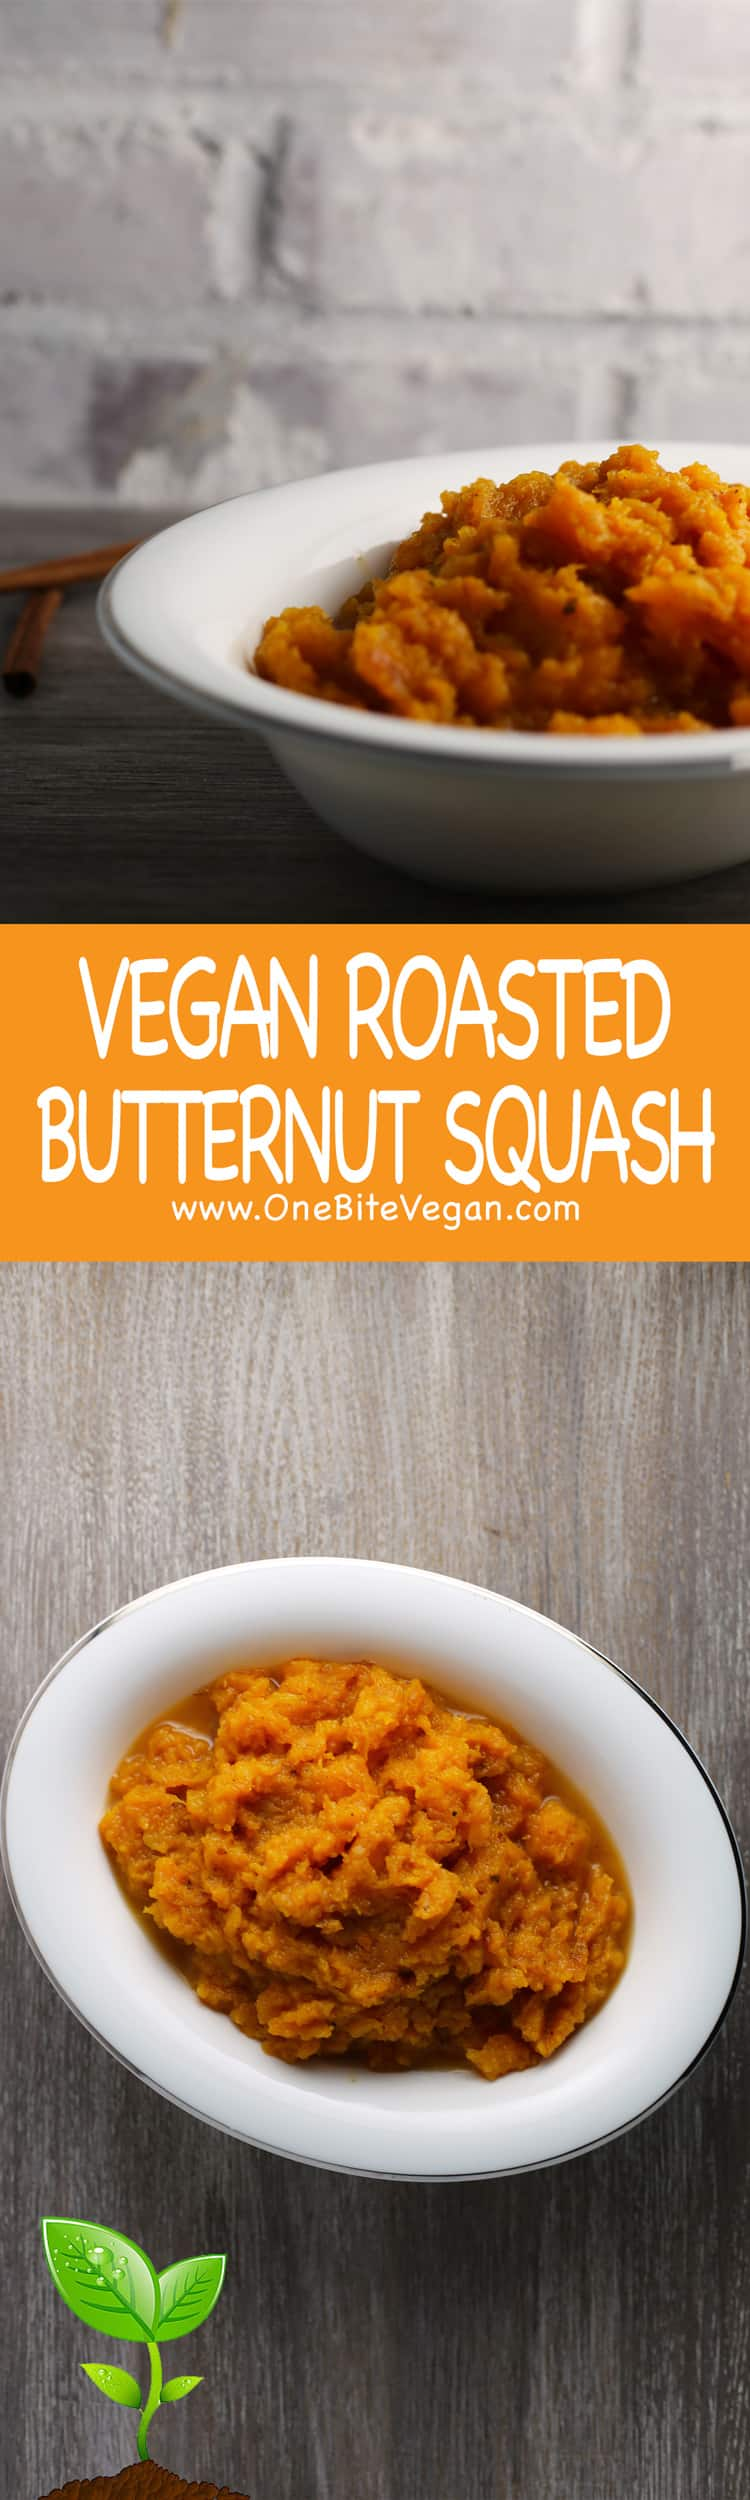 Vegan butternut squash. Butternut squash is cut in half and roasted in the oven for 45 minutes. Then scoopedout and mixed with soy butter, maple syrup, and spices.